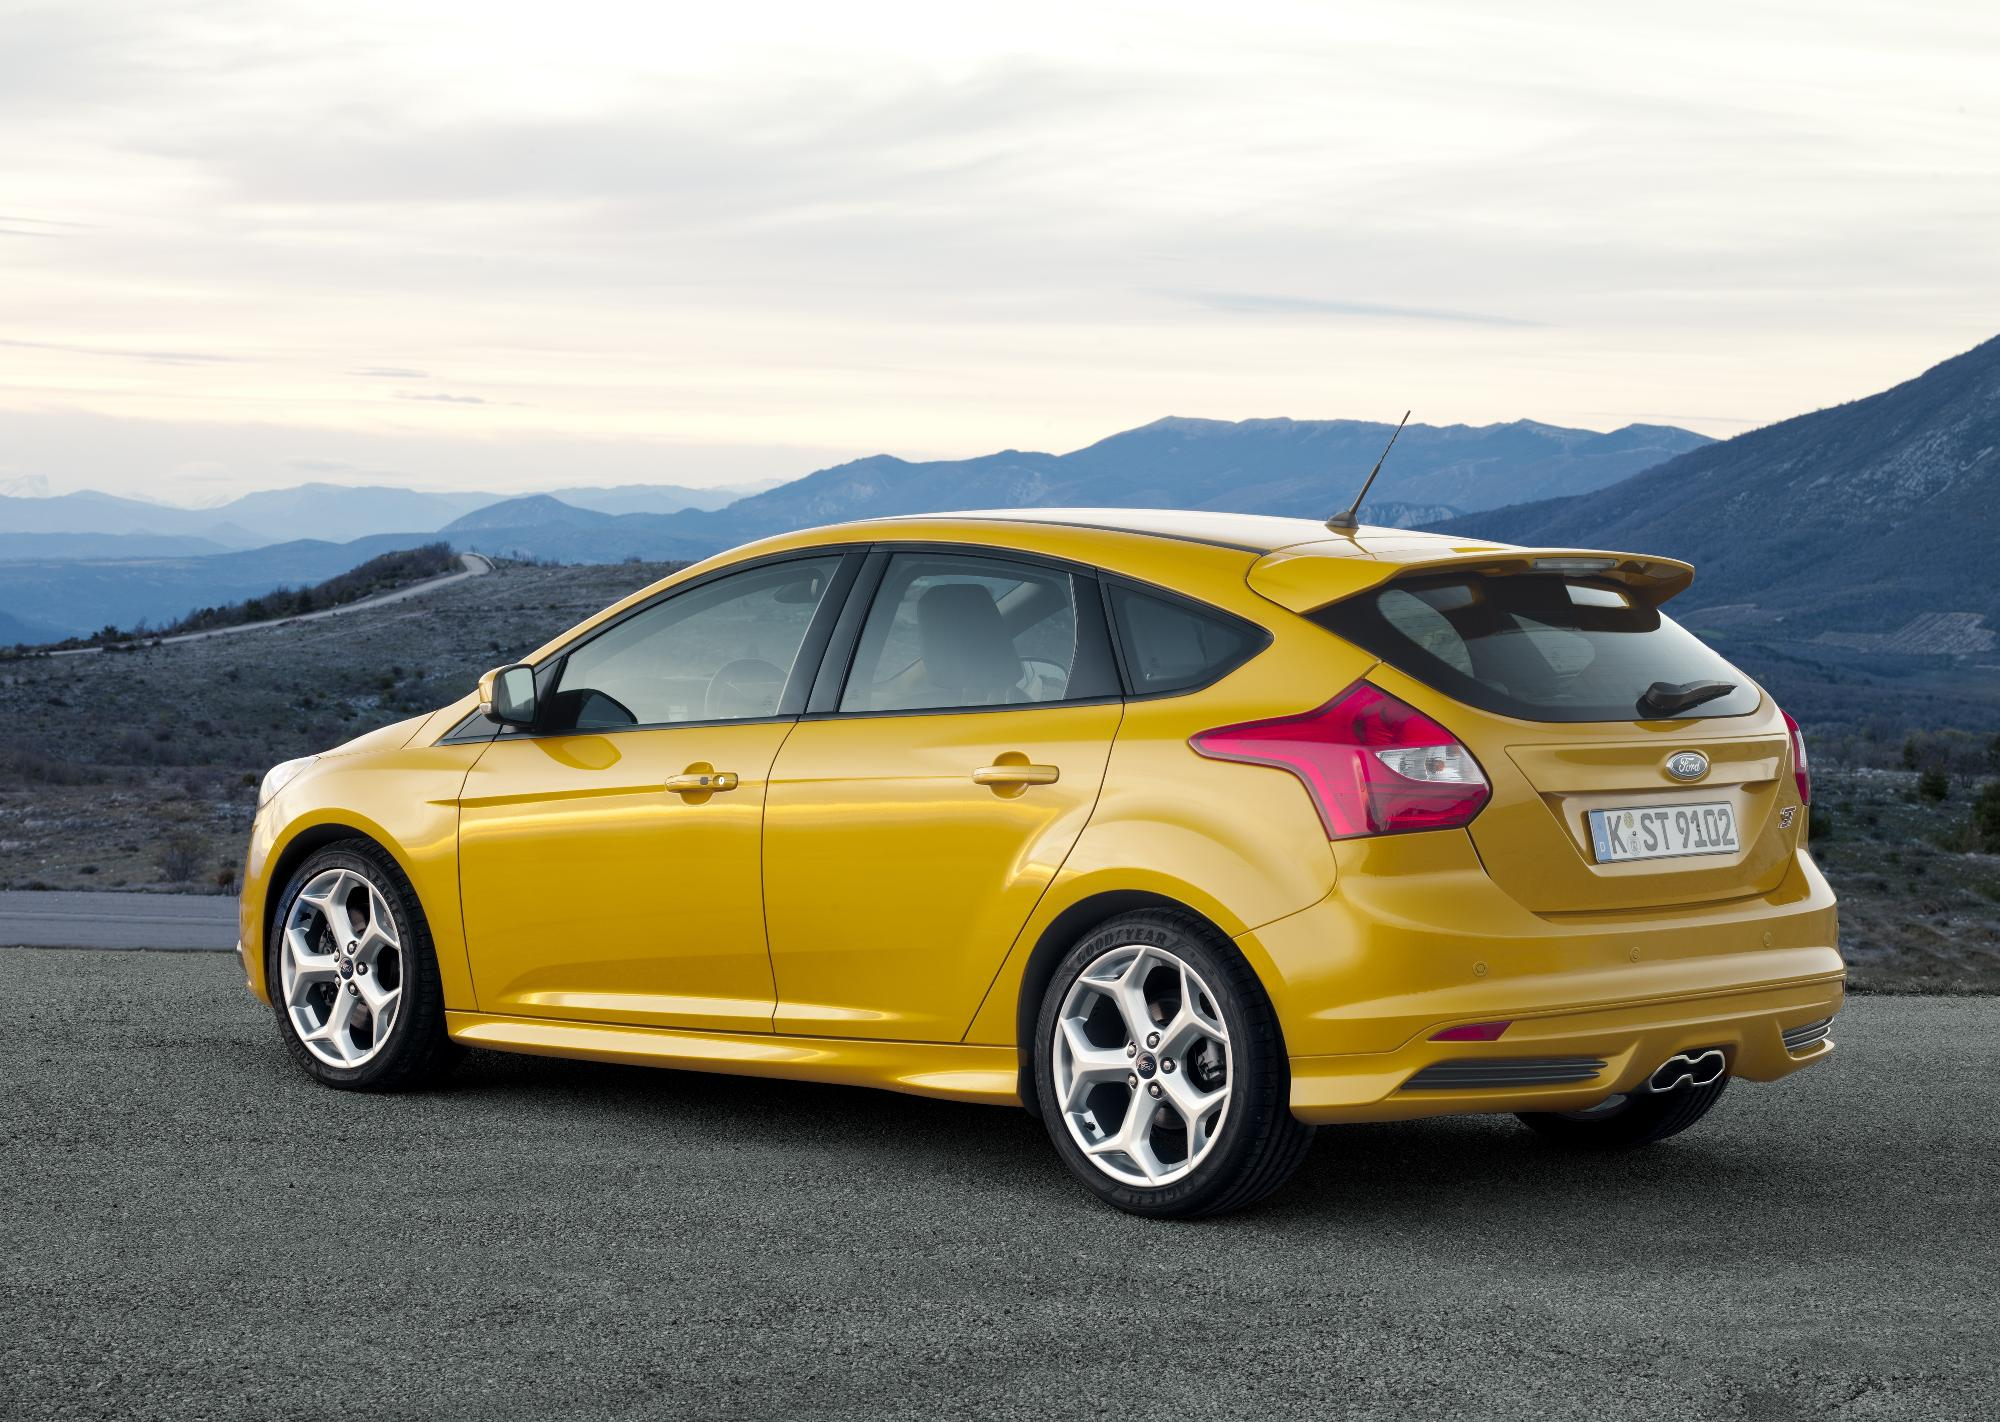 Ford Focus ST 2012 Rear